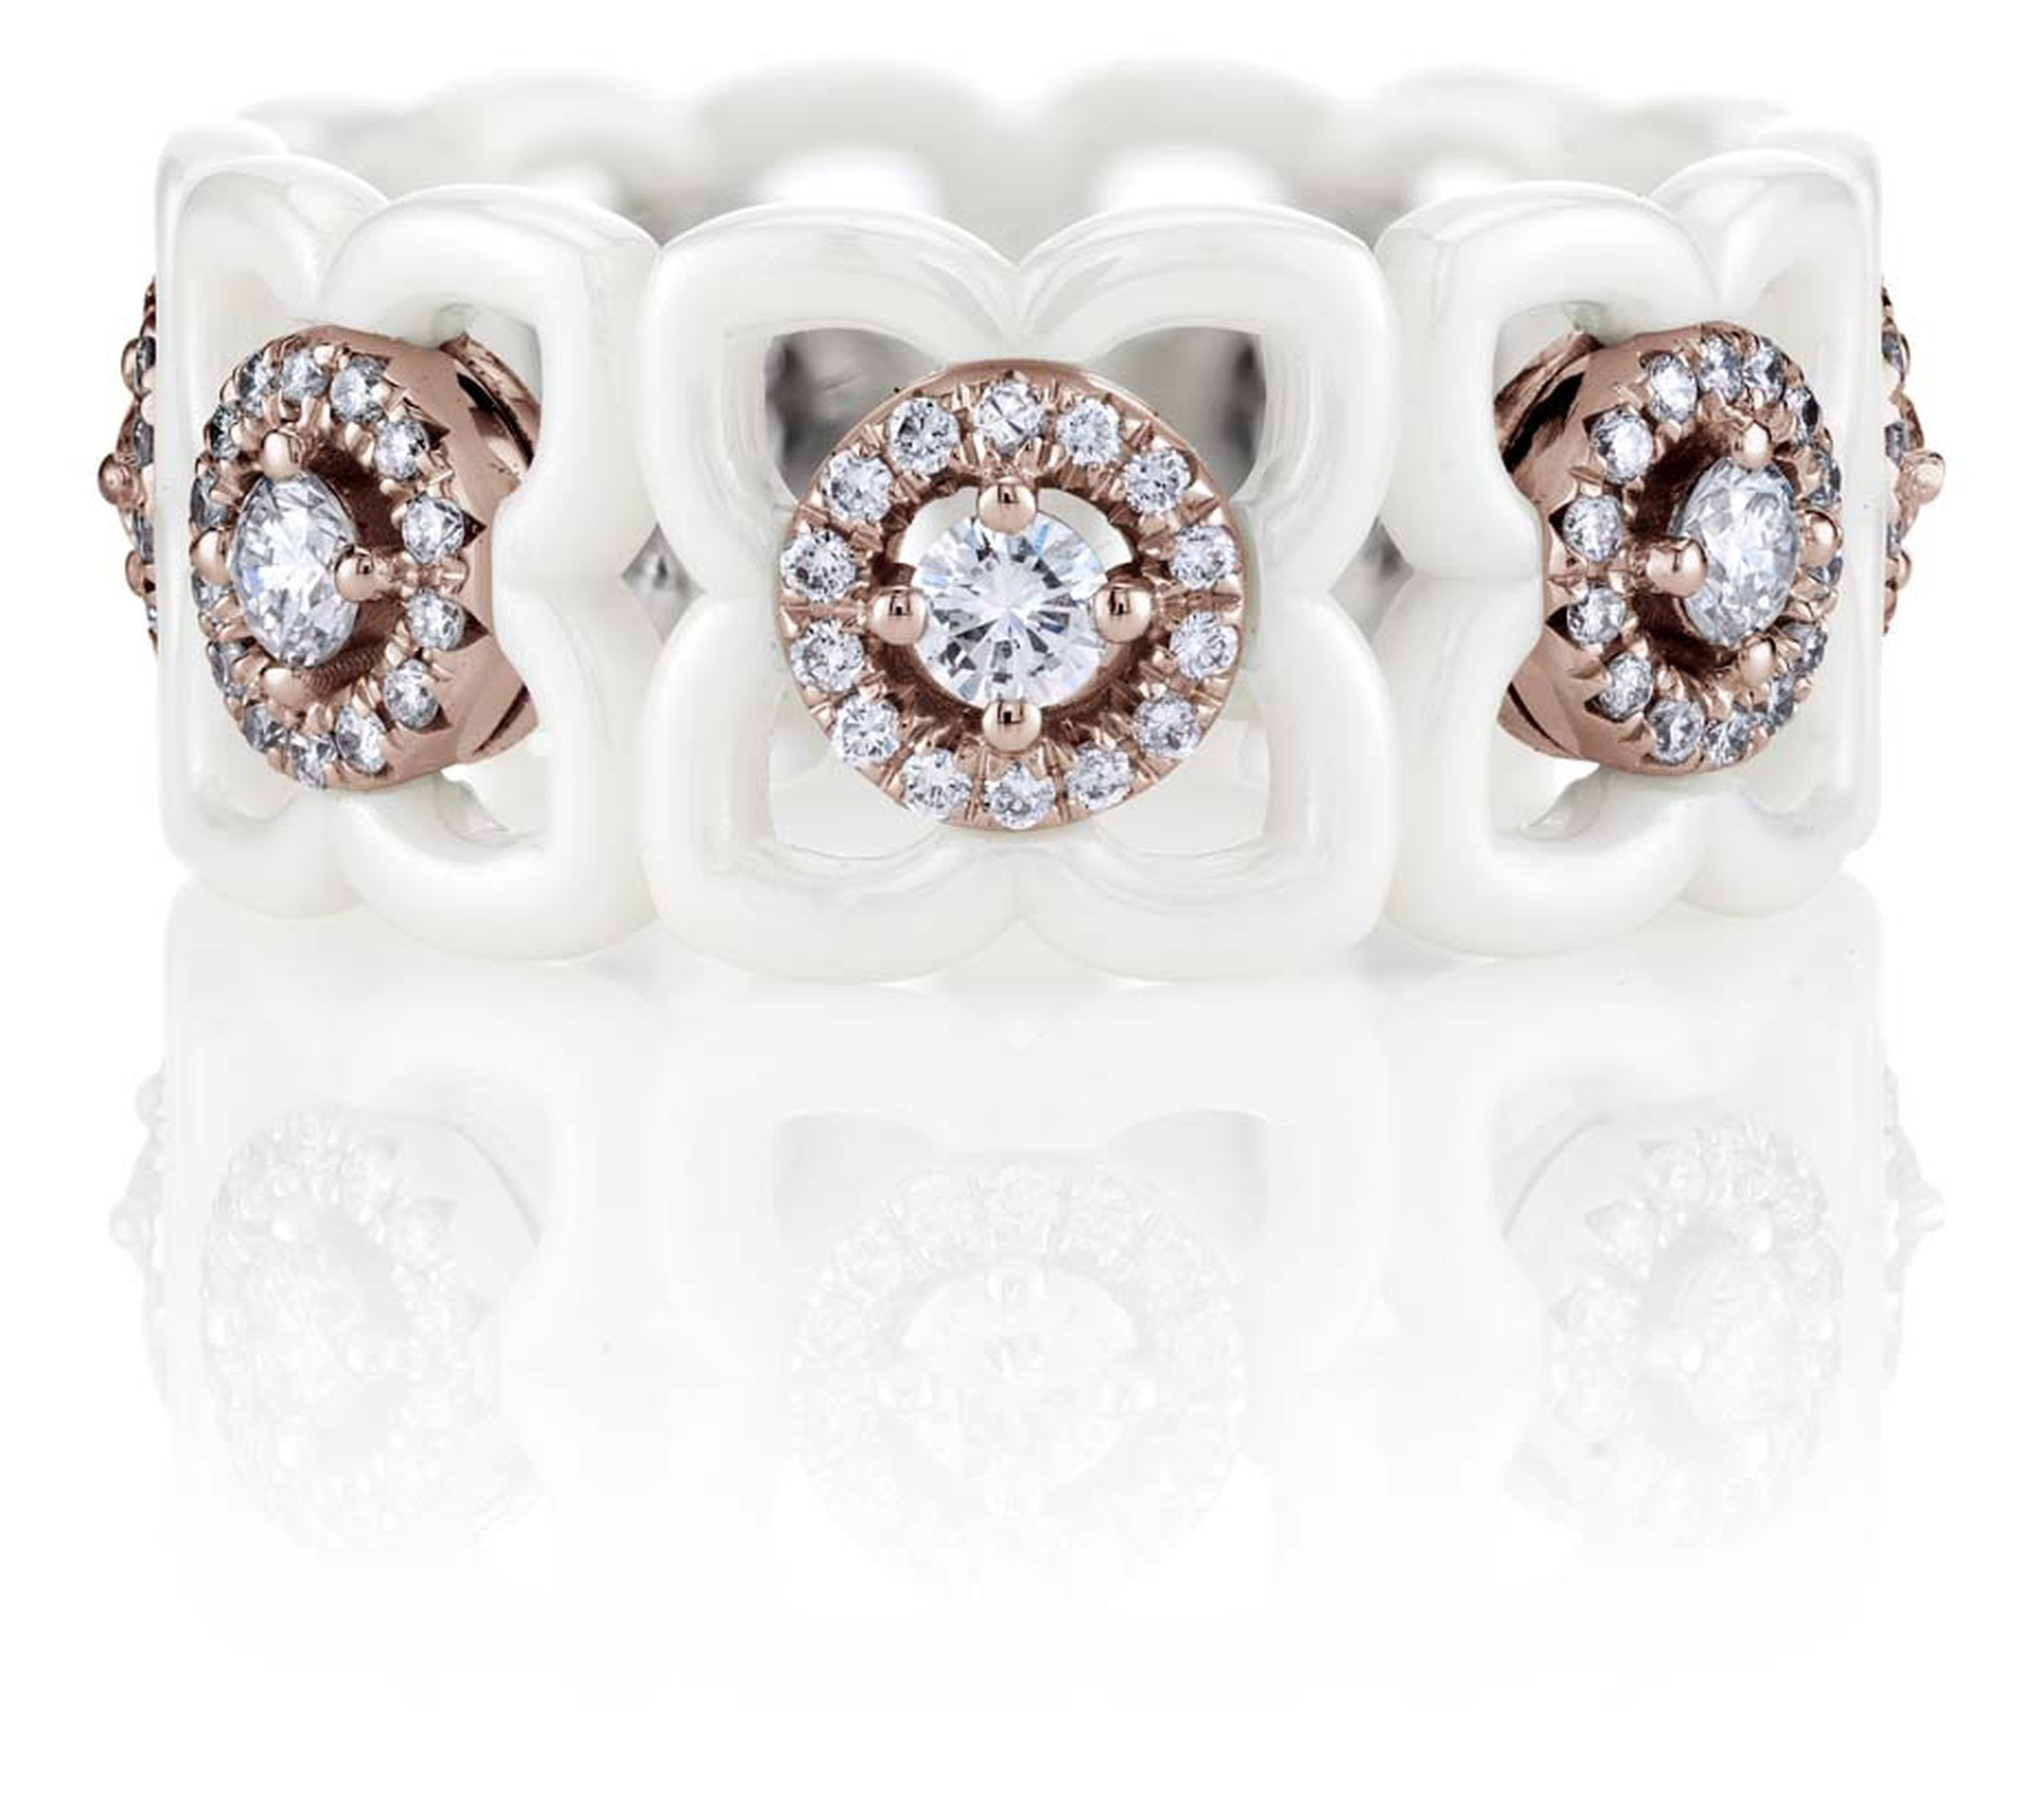 De Beers Enchanted Lotus Daylight ring featuring white ceramic, pink gold and round diamonds.